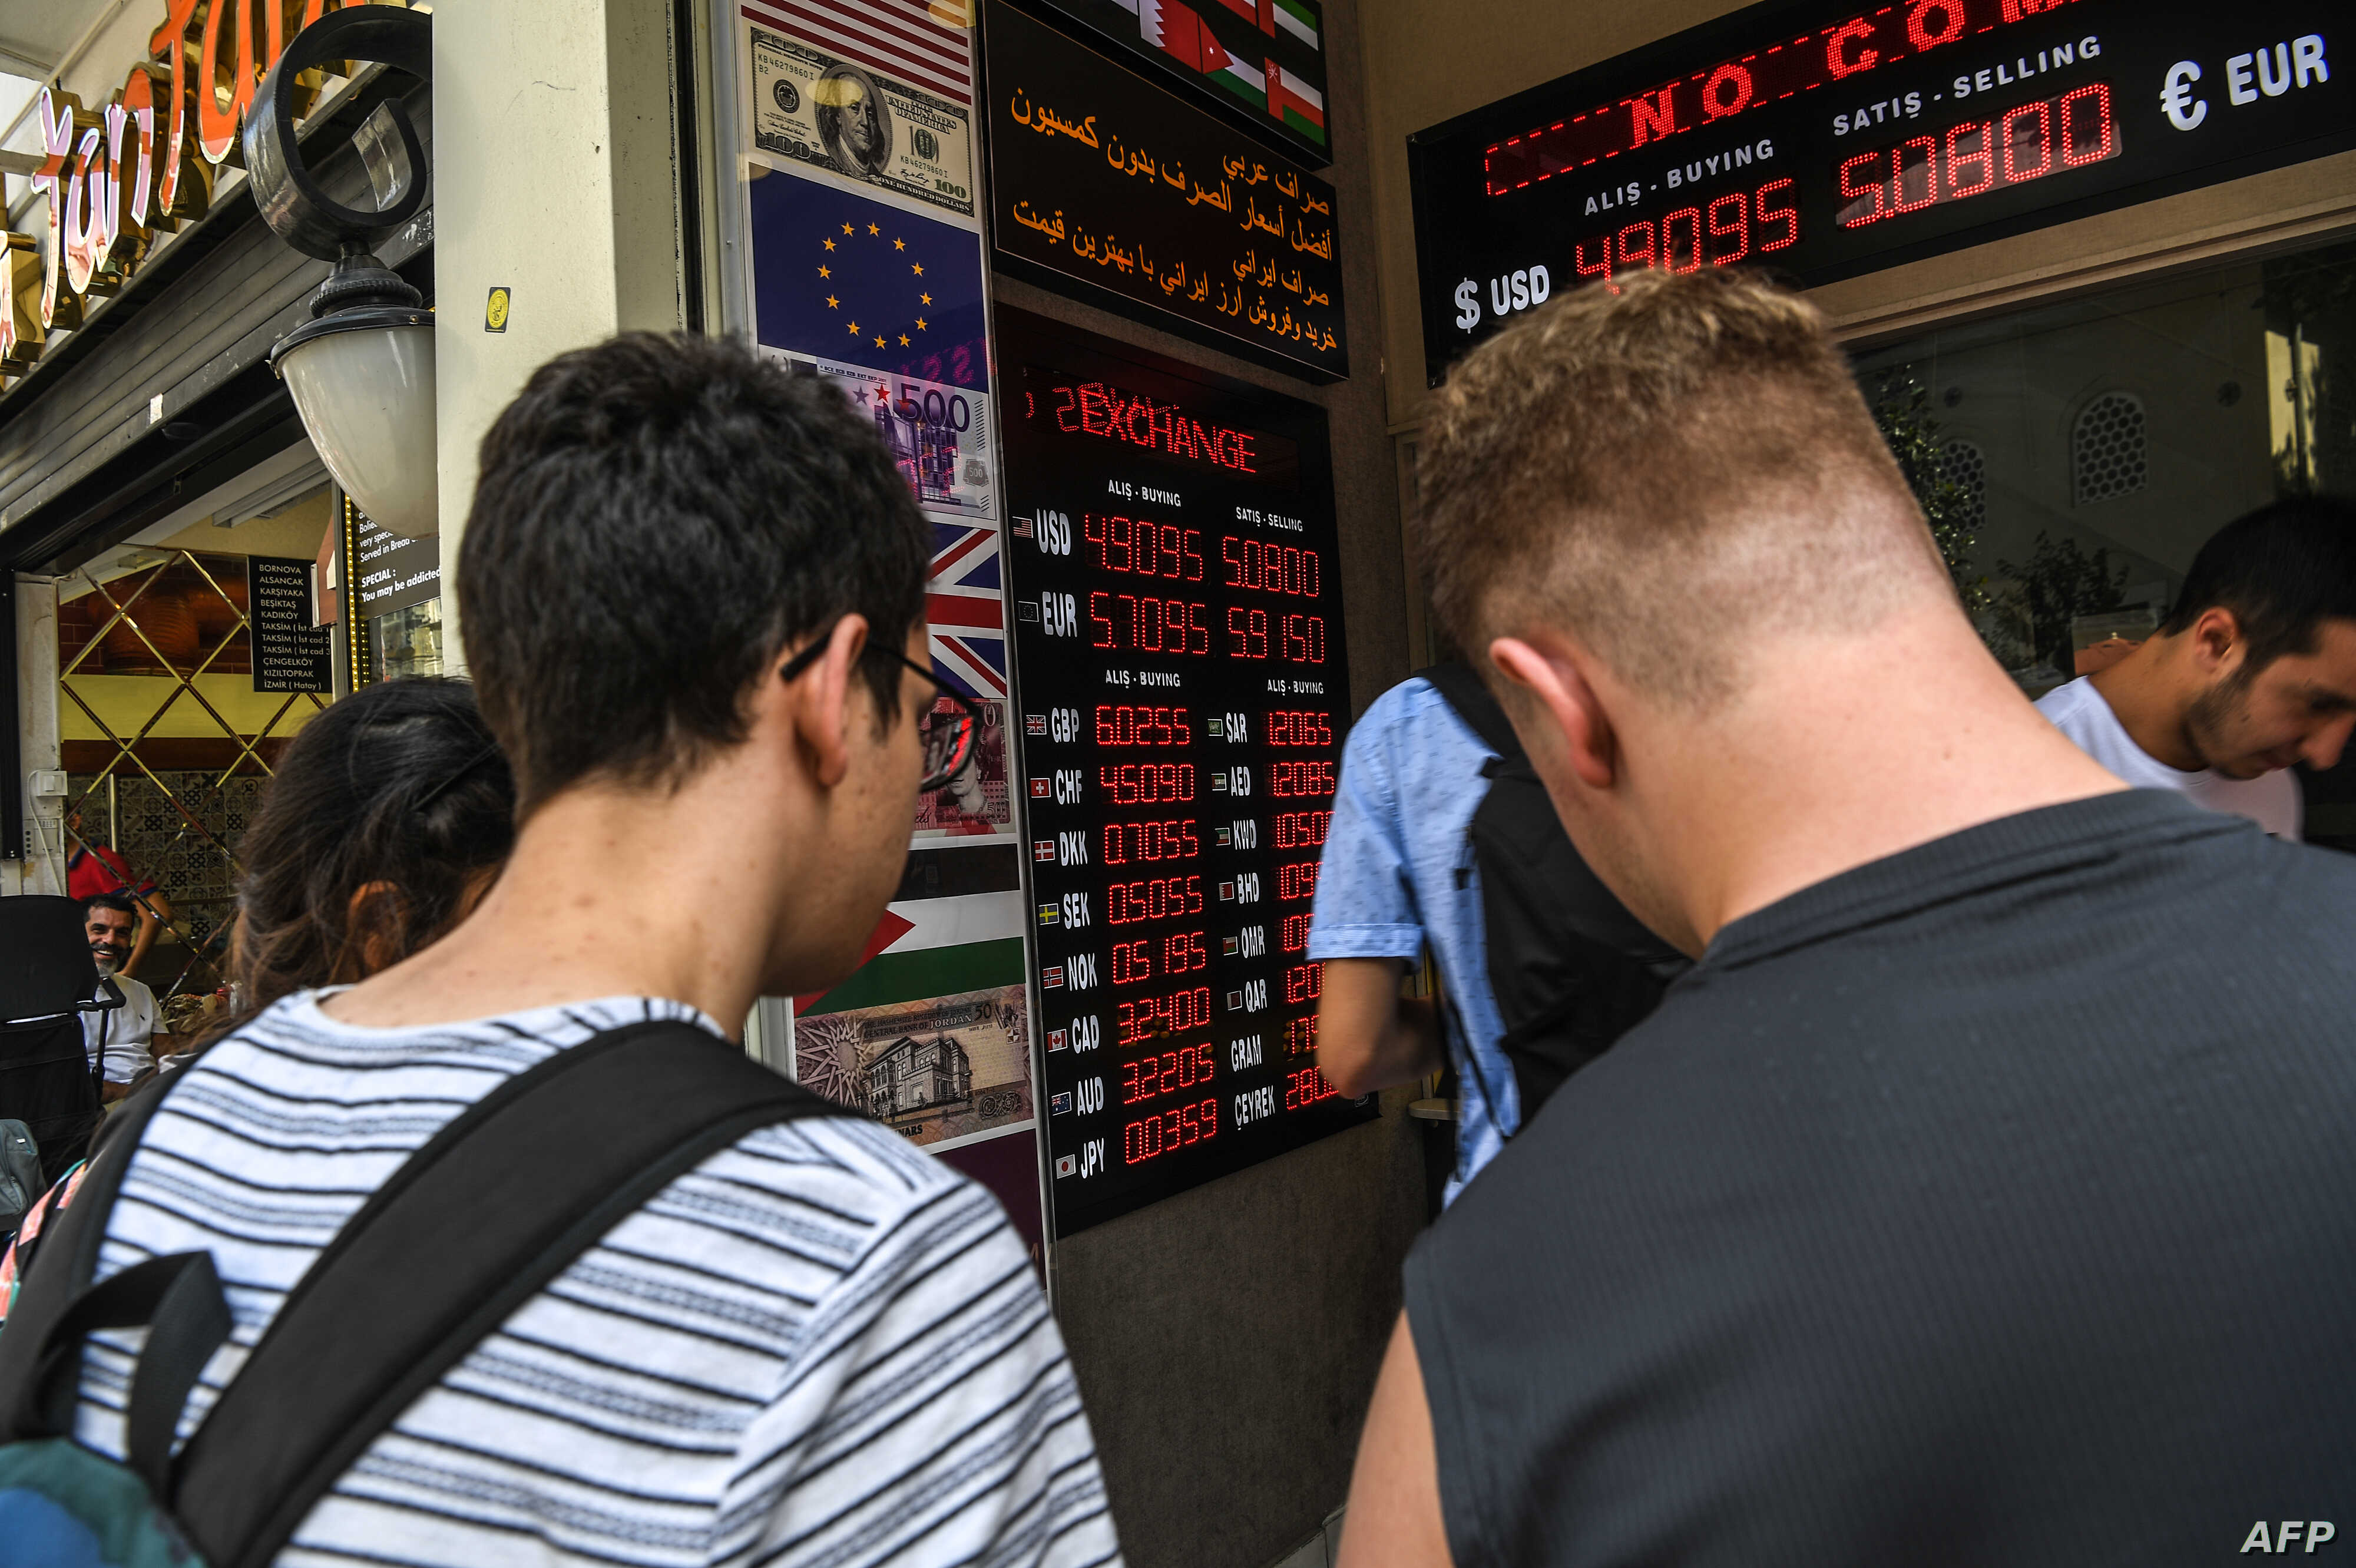 People change their money at a counter on the Istiklal avenue in Istanbul on Aug. 2, 2018 next to a panel indicating foreign exchange and Turkish lira rates.